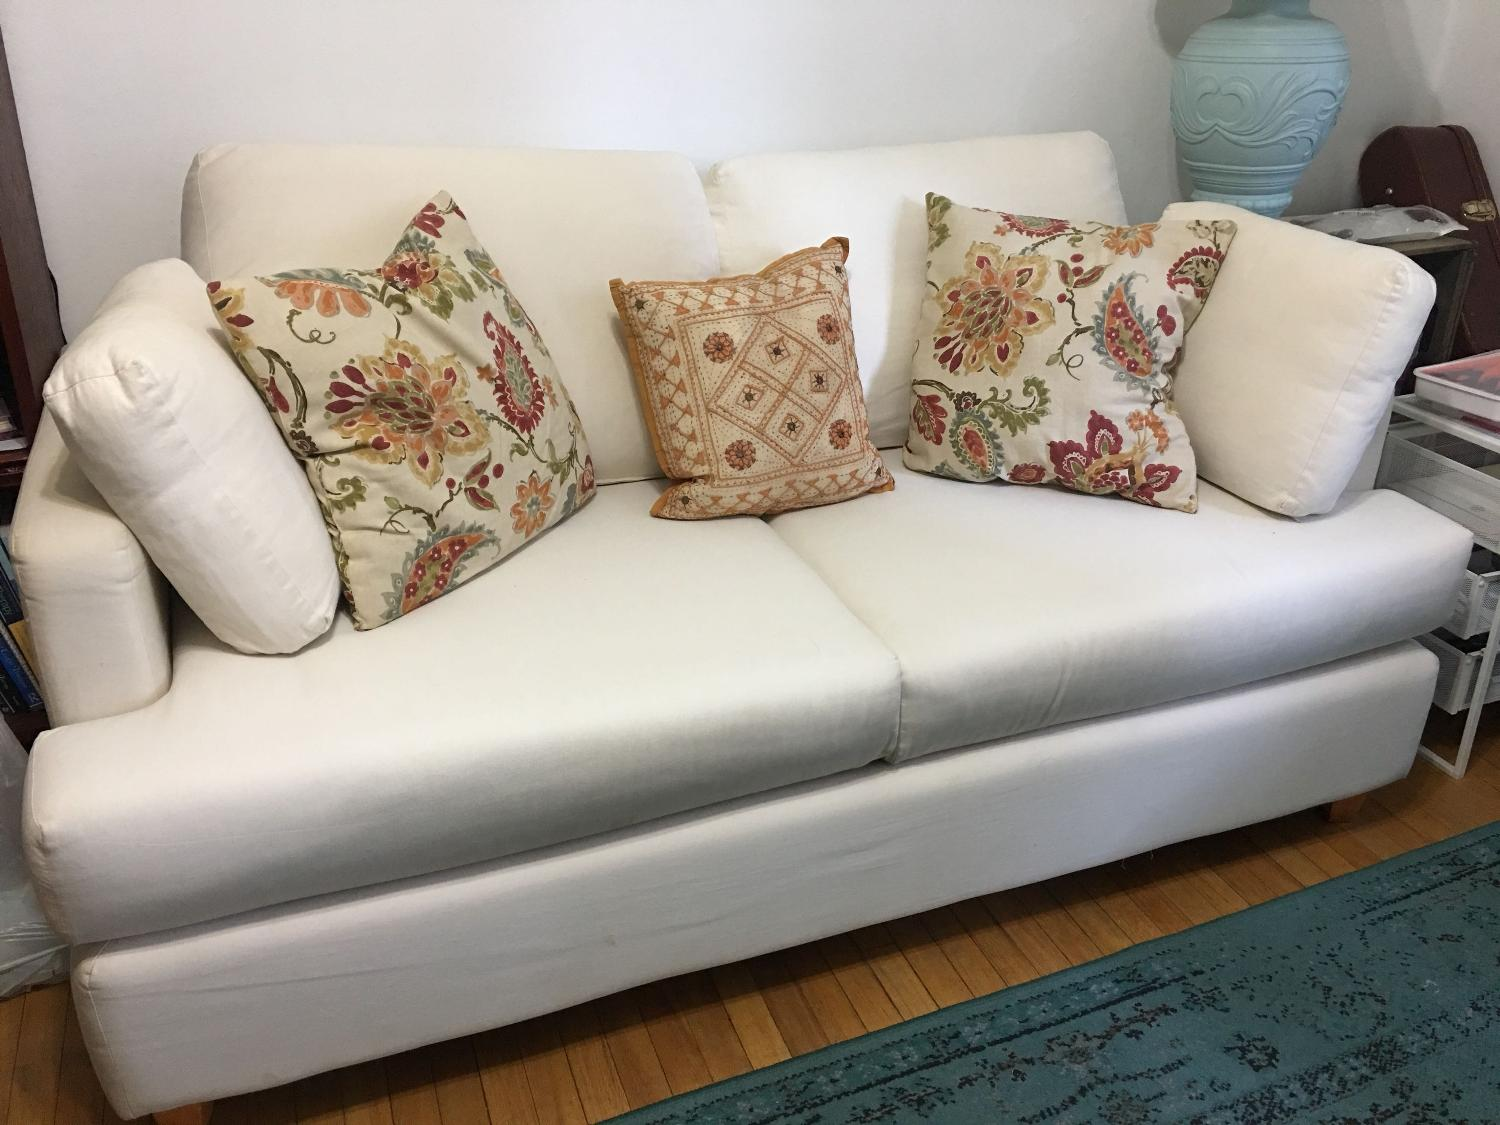 Best Ikea White Sofa W Pull Out Double Bed For Sale In